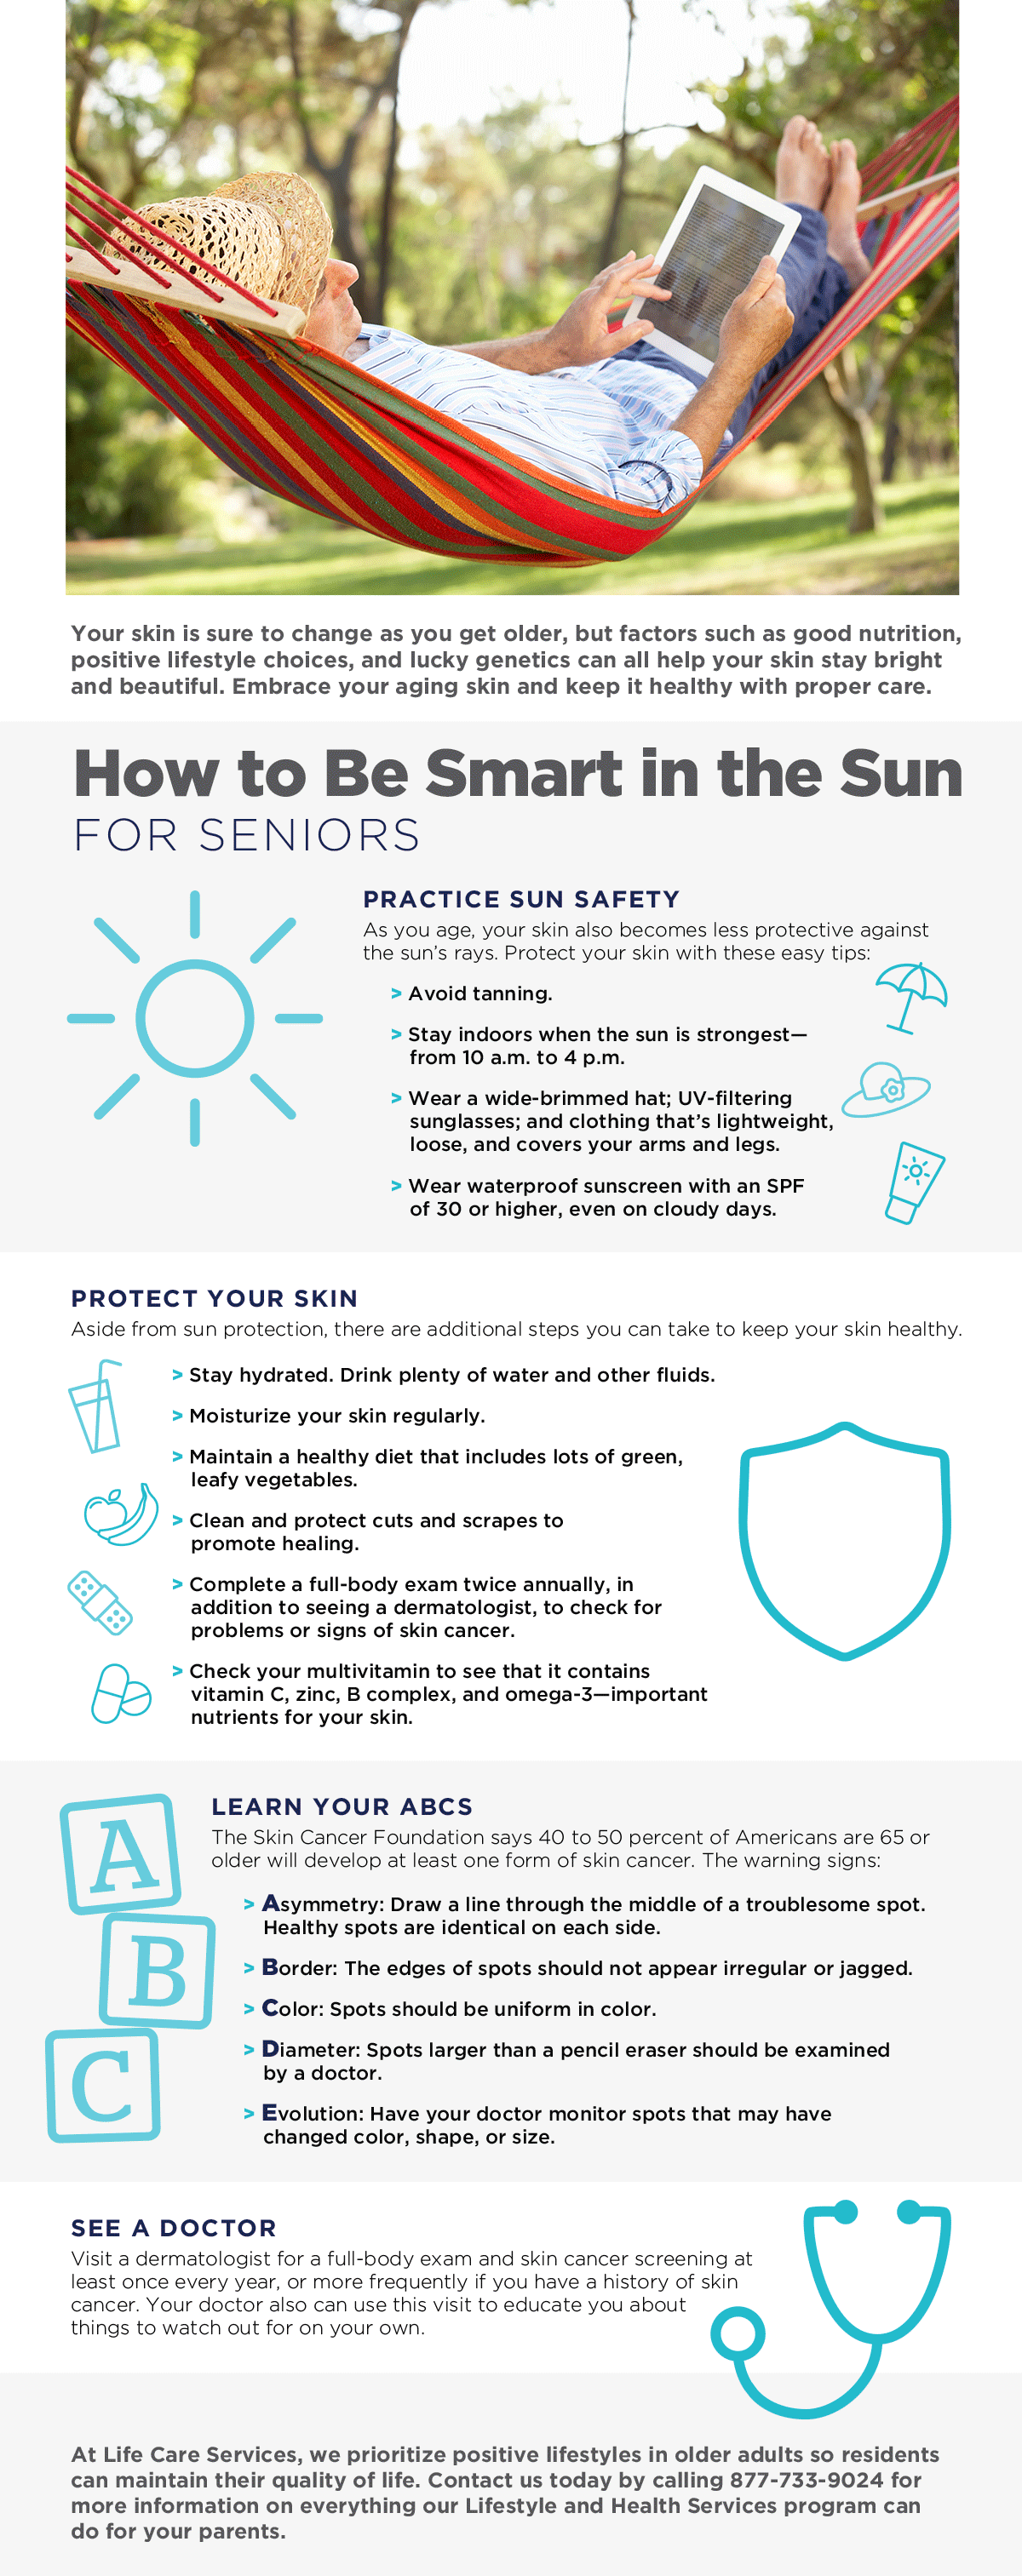 Smart in the Sun for Seniors